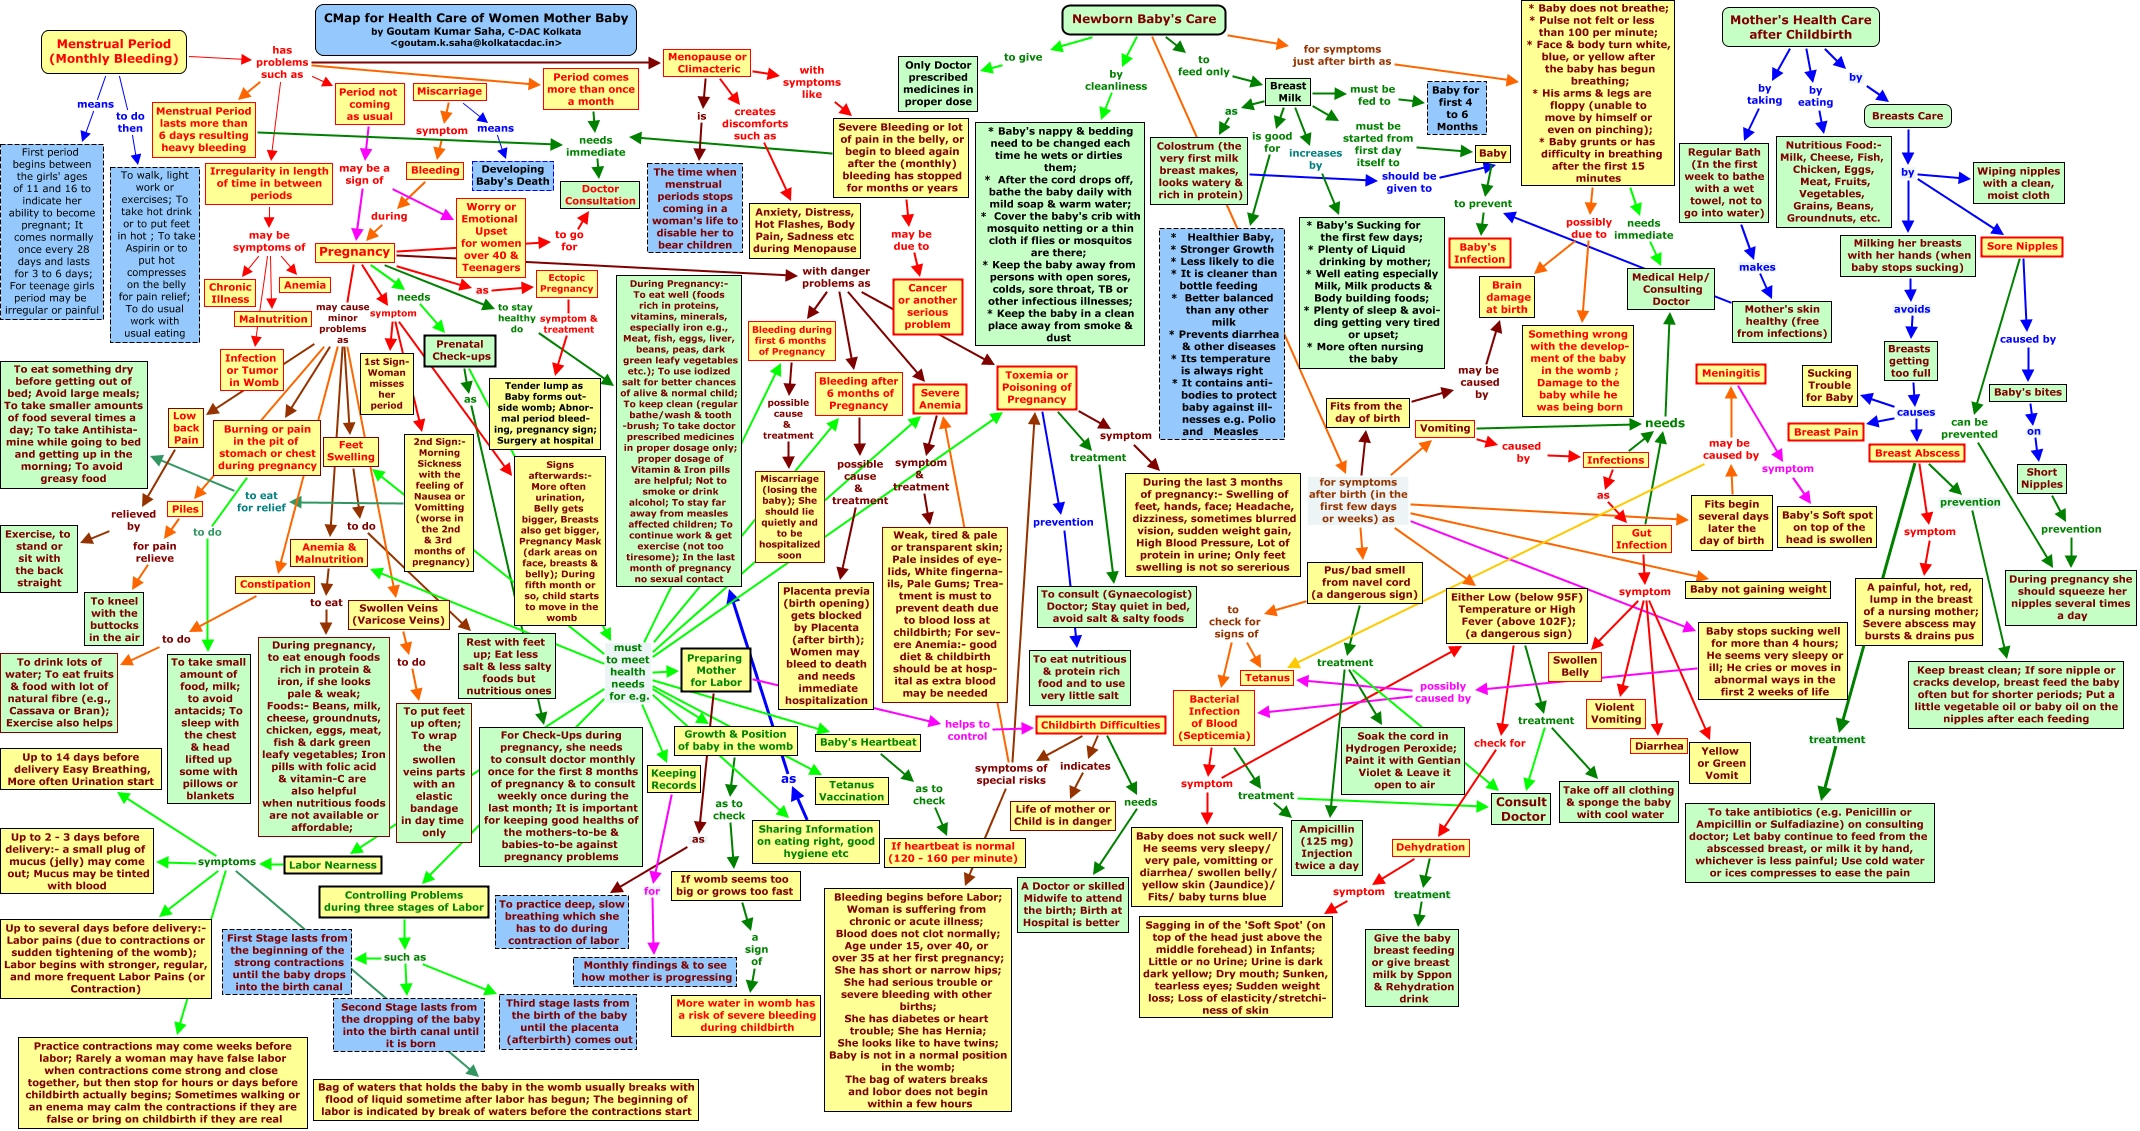 Concept Mapping of Health Care for Women Mothers & Midwives   What